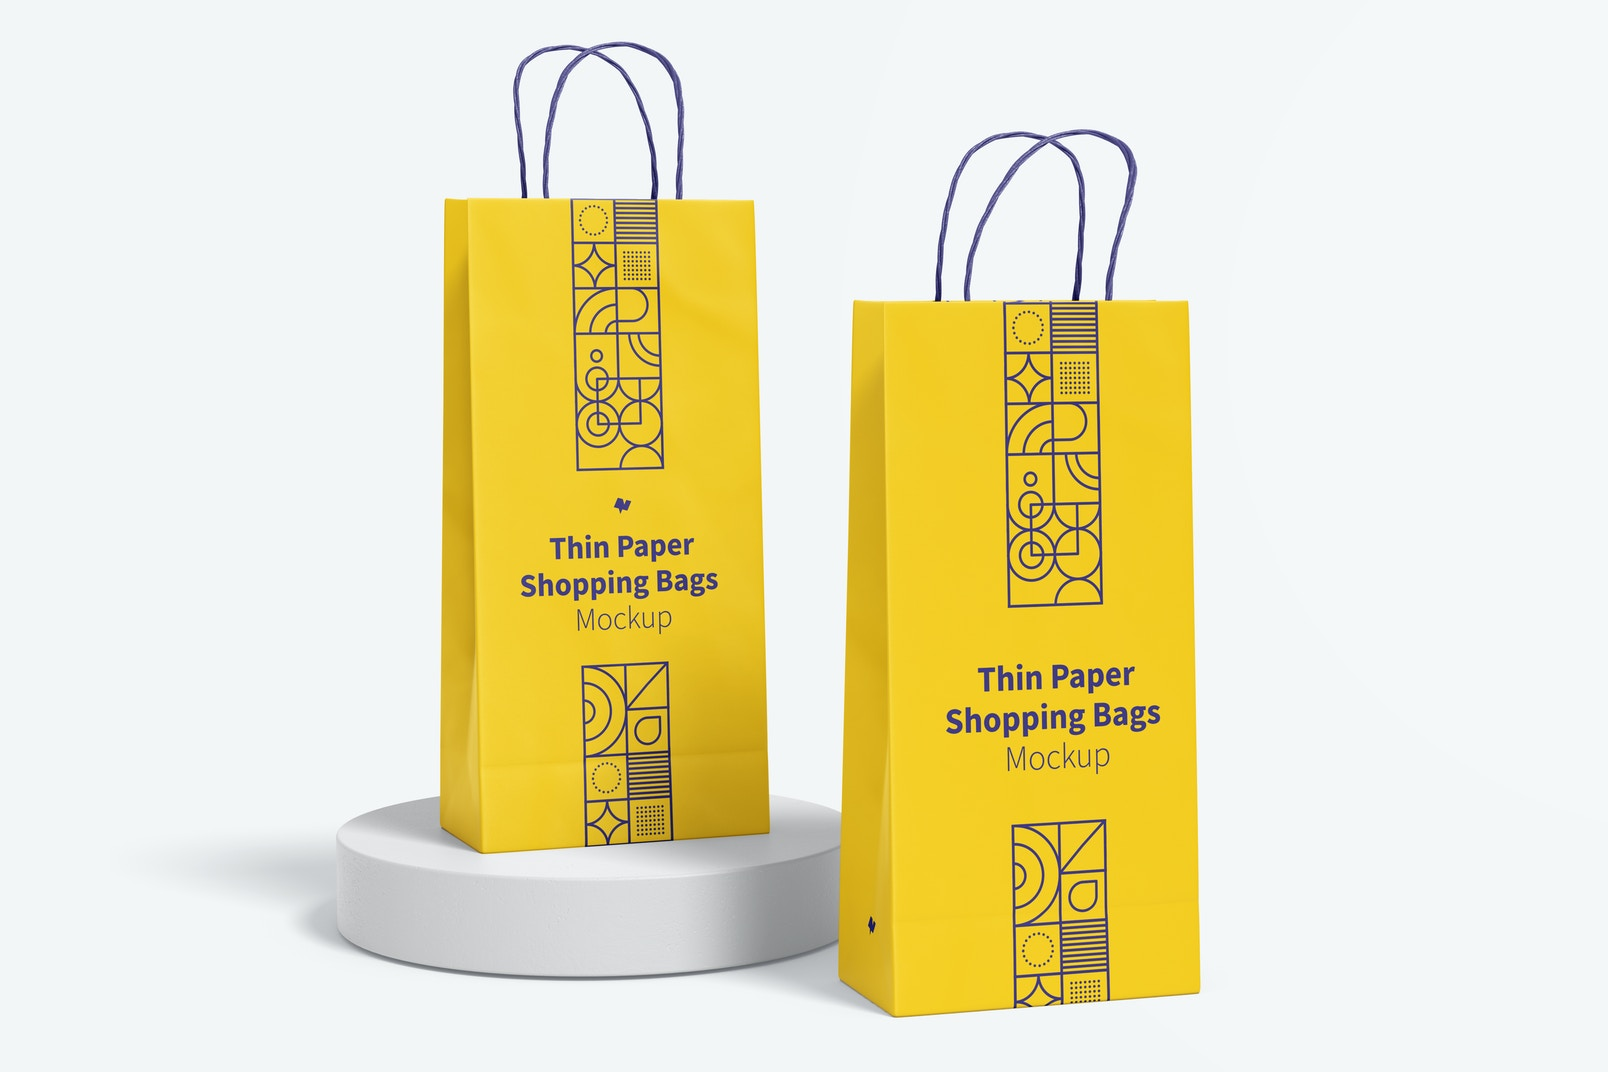 Thin Paper Shopping Bags Mockup, Right View